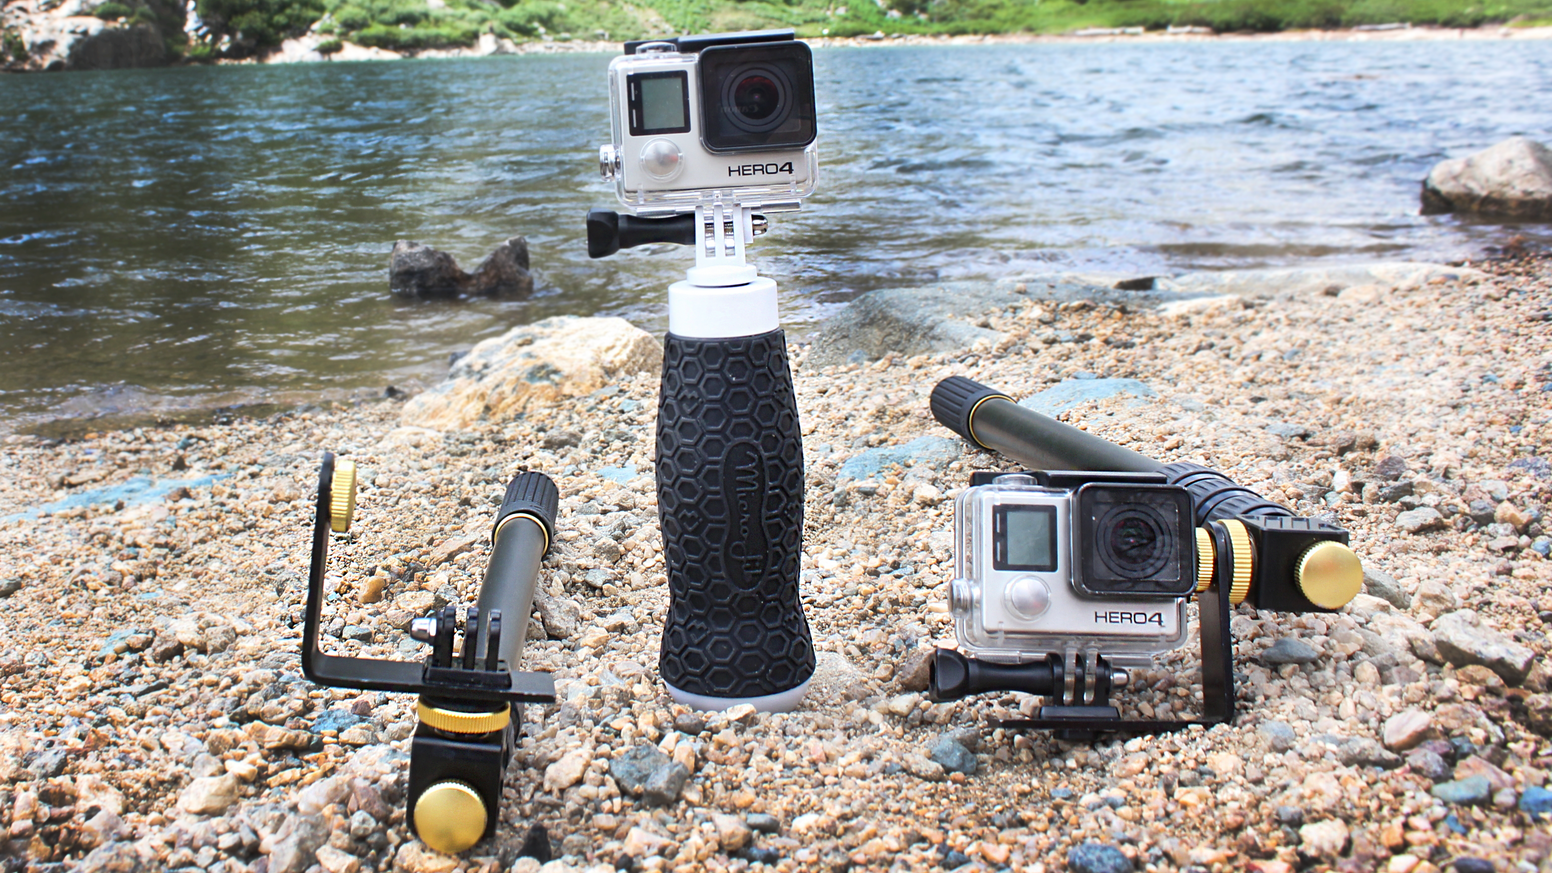 Pan +Tilt your GoPro 360° with MicroJib 2. Go big with the MJ XL! Get wet with the Flow -the only extendable hand grip that floats!